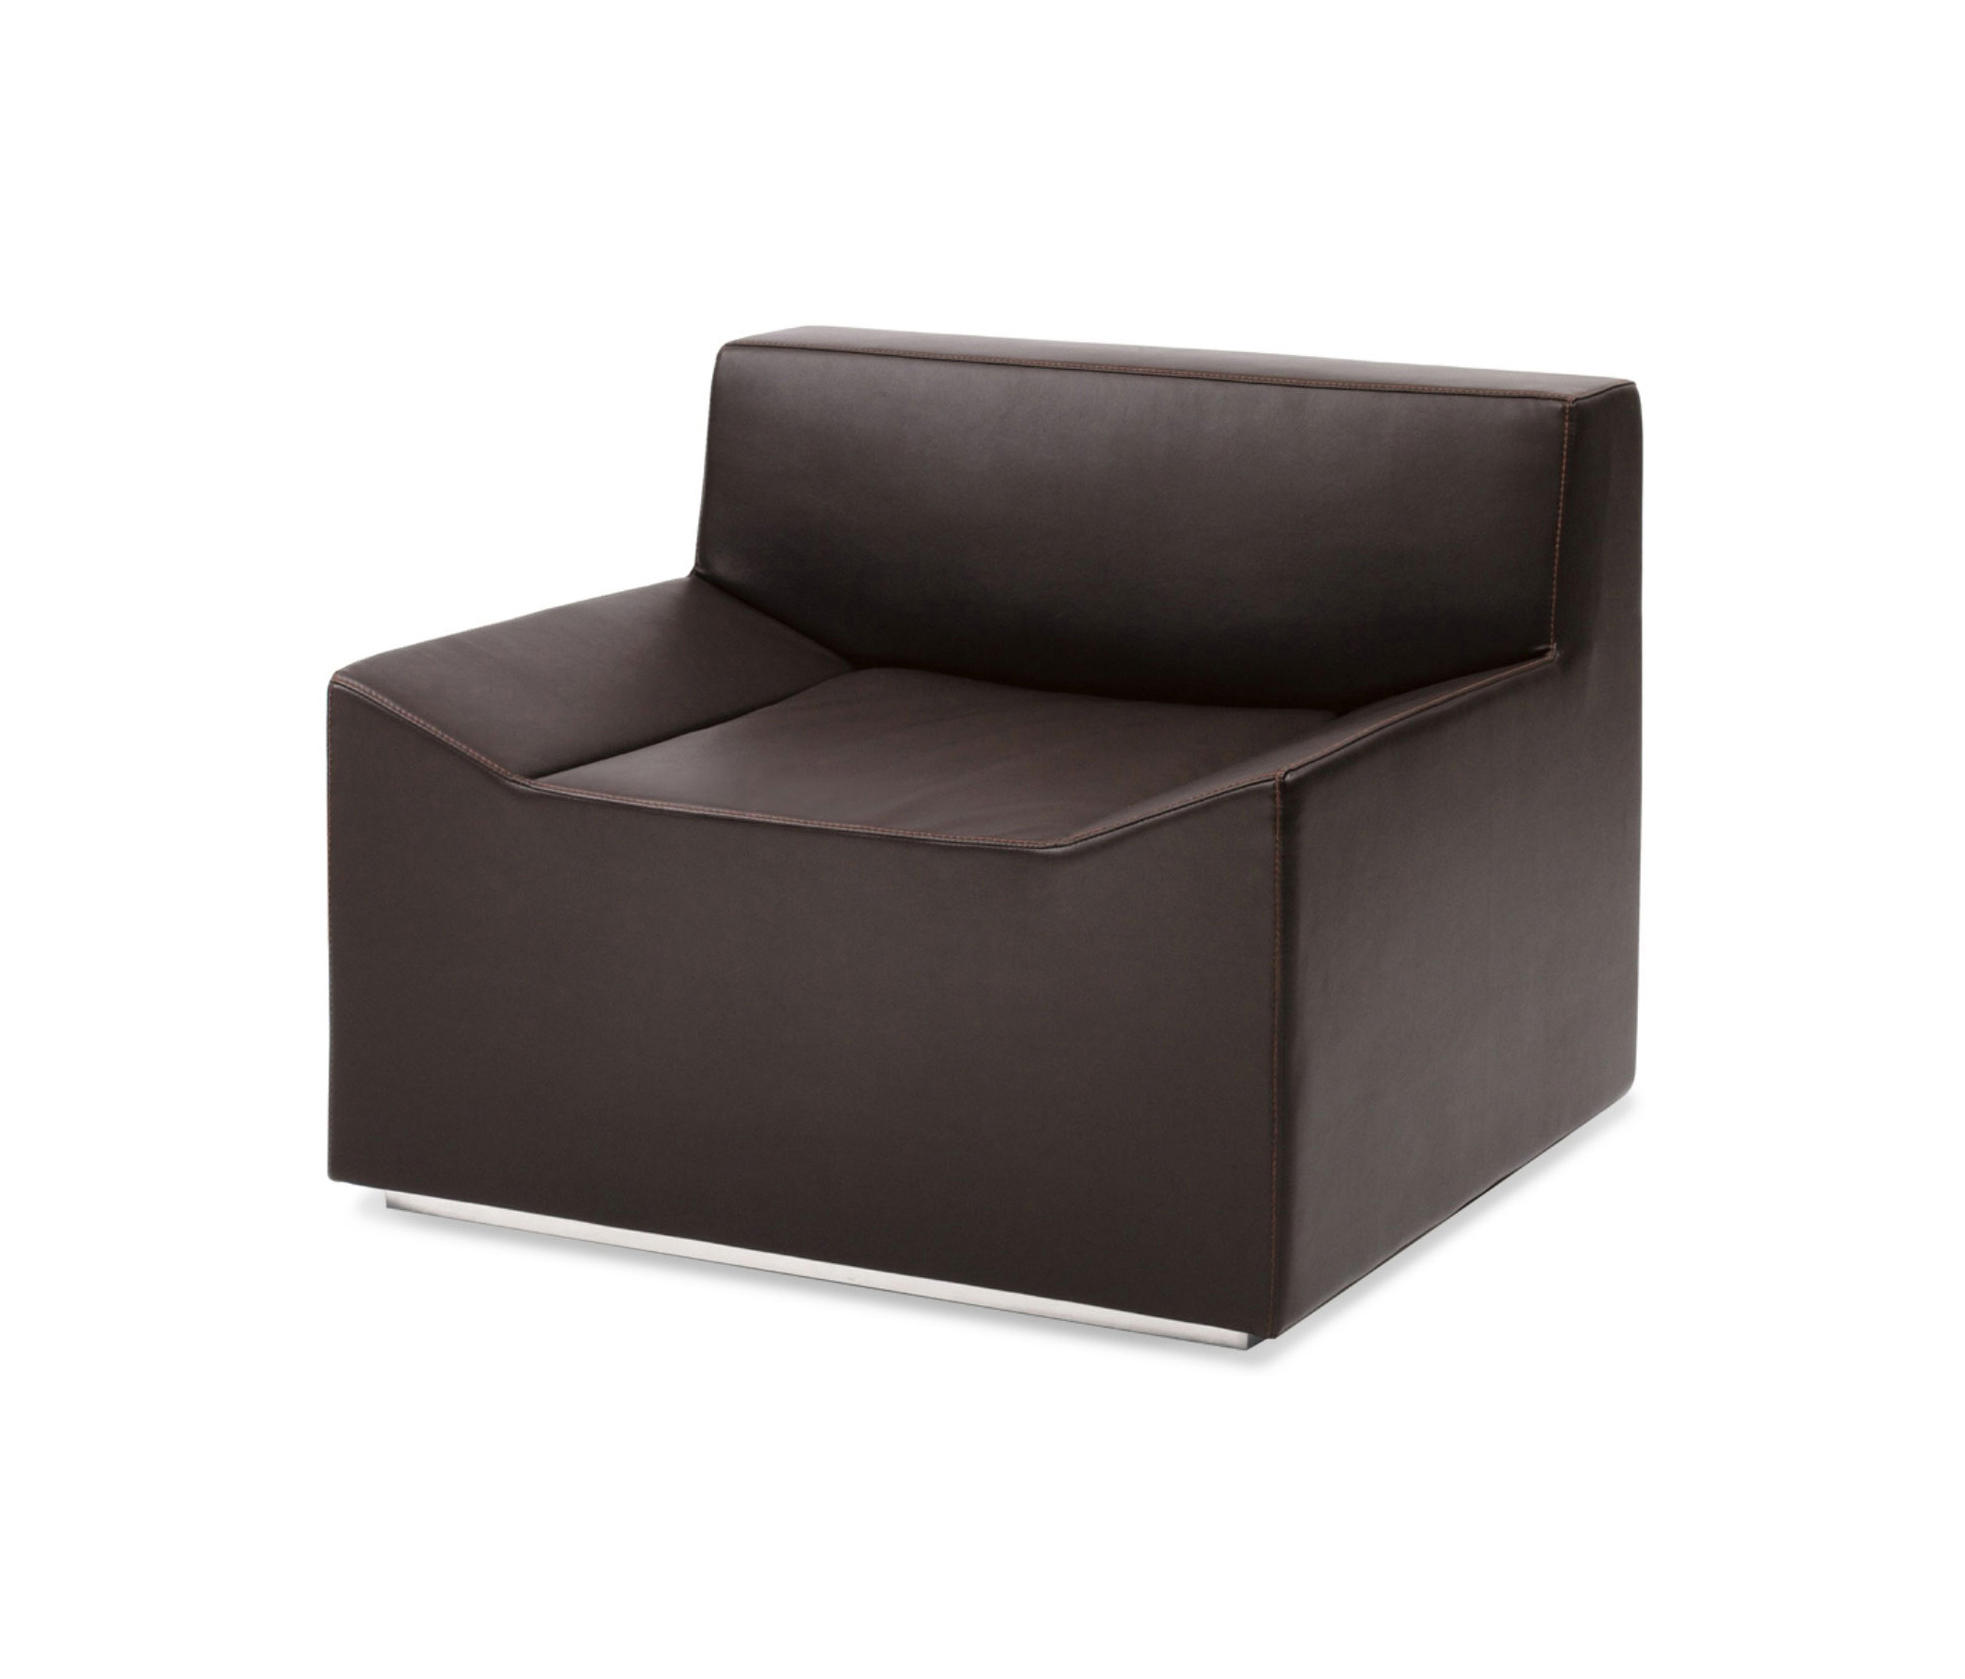 Couchoid Lounge Chair & designer furniture | Architonic